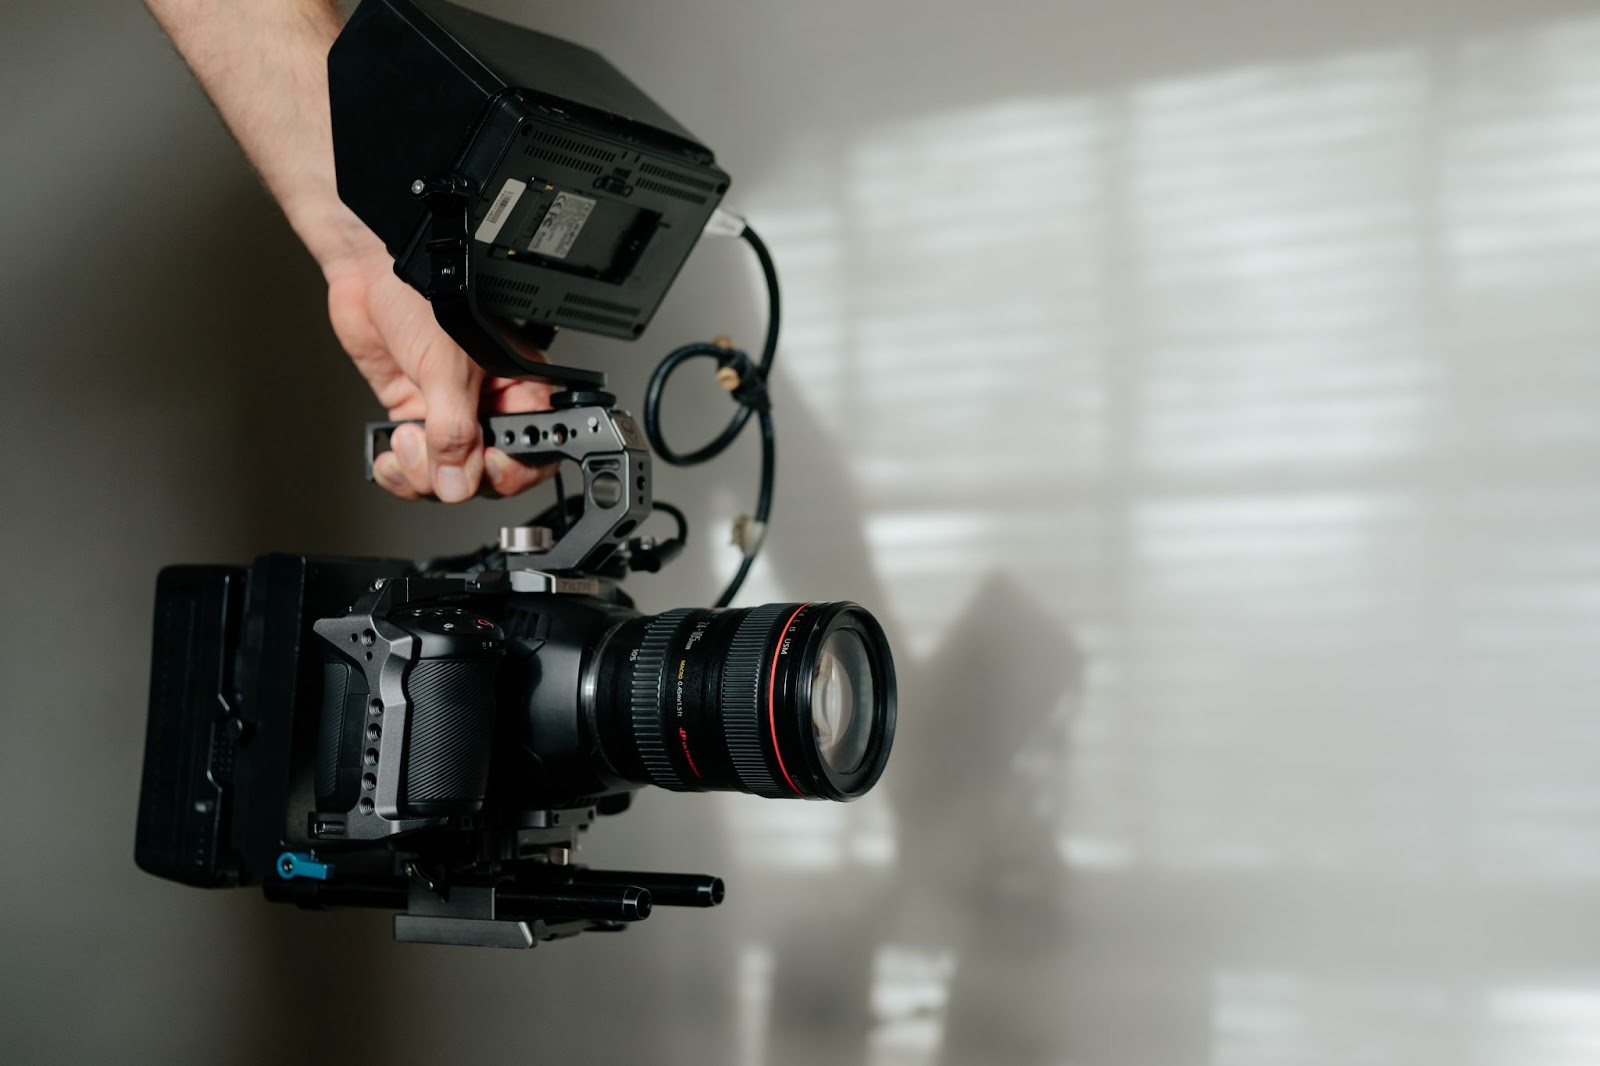 A video camera to take product videos for marketing purpose.